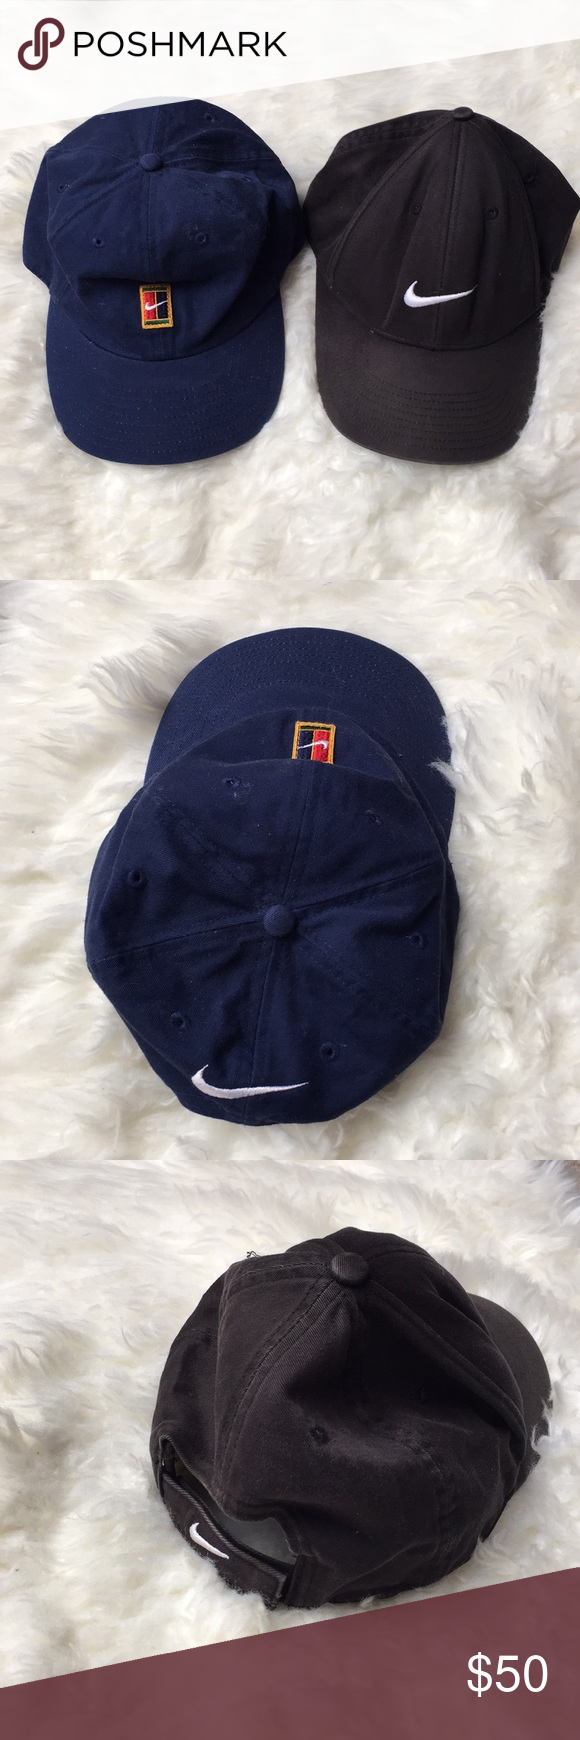 bb97b0bb2e1 Vintage NIKE Dad hats Vintage Nike hats Navy and black Nike Accessories Hats